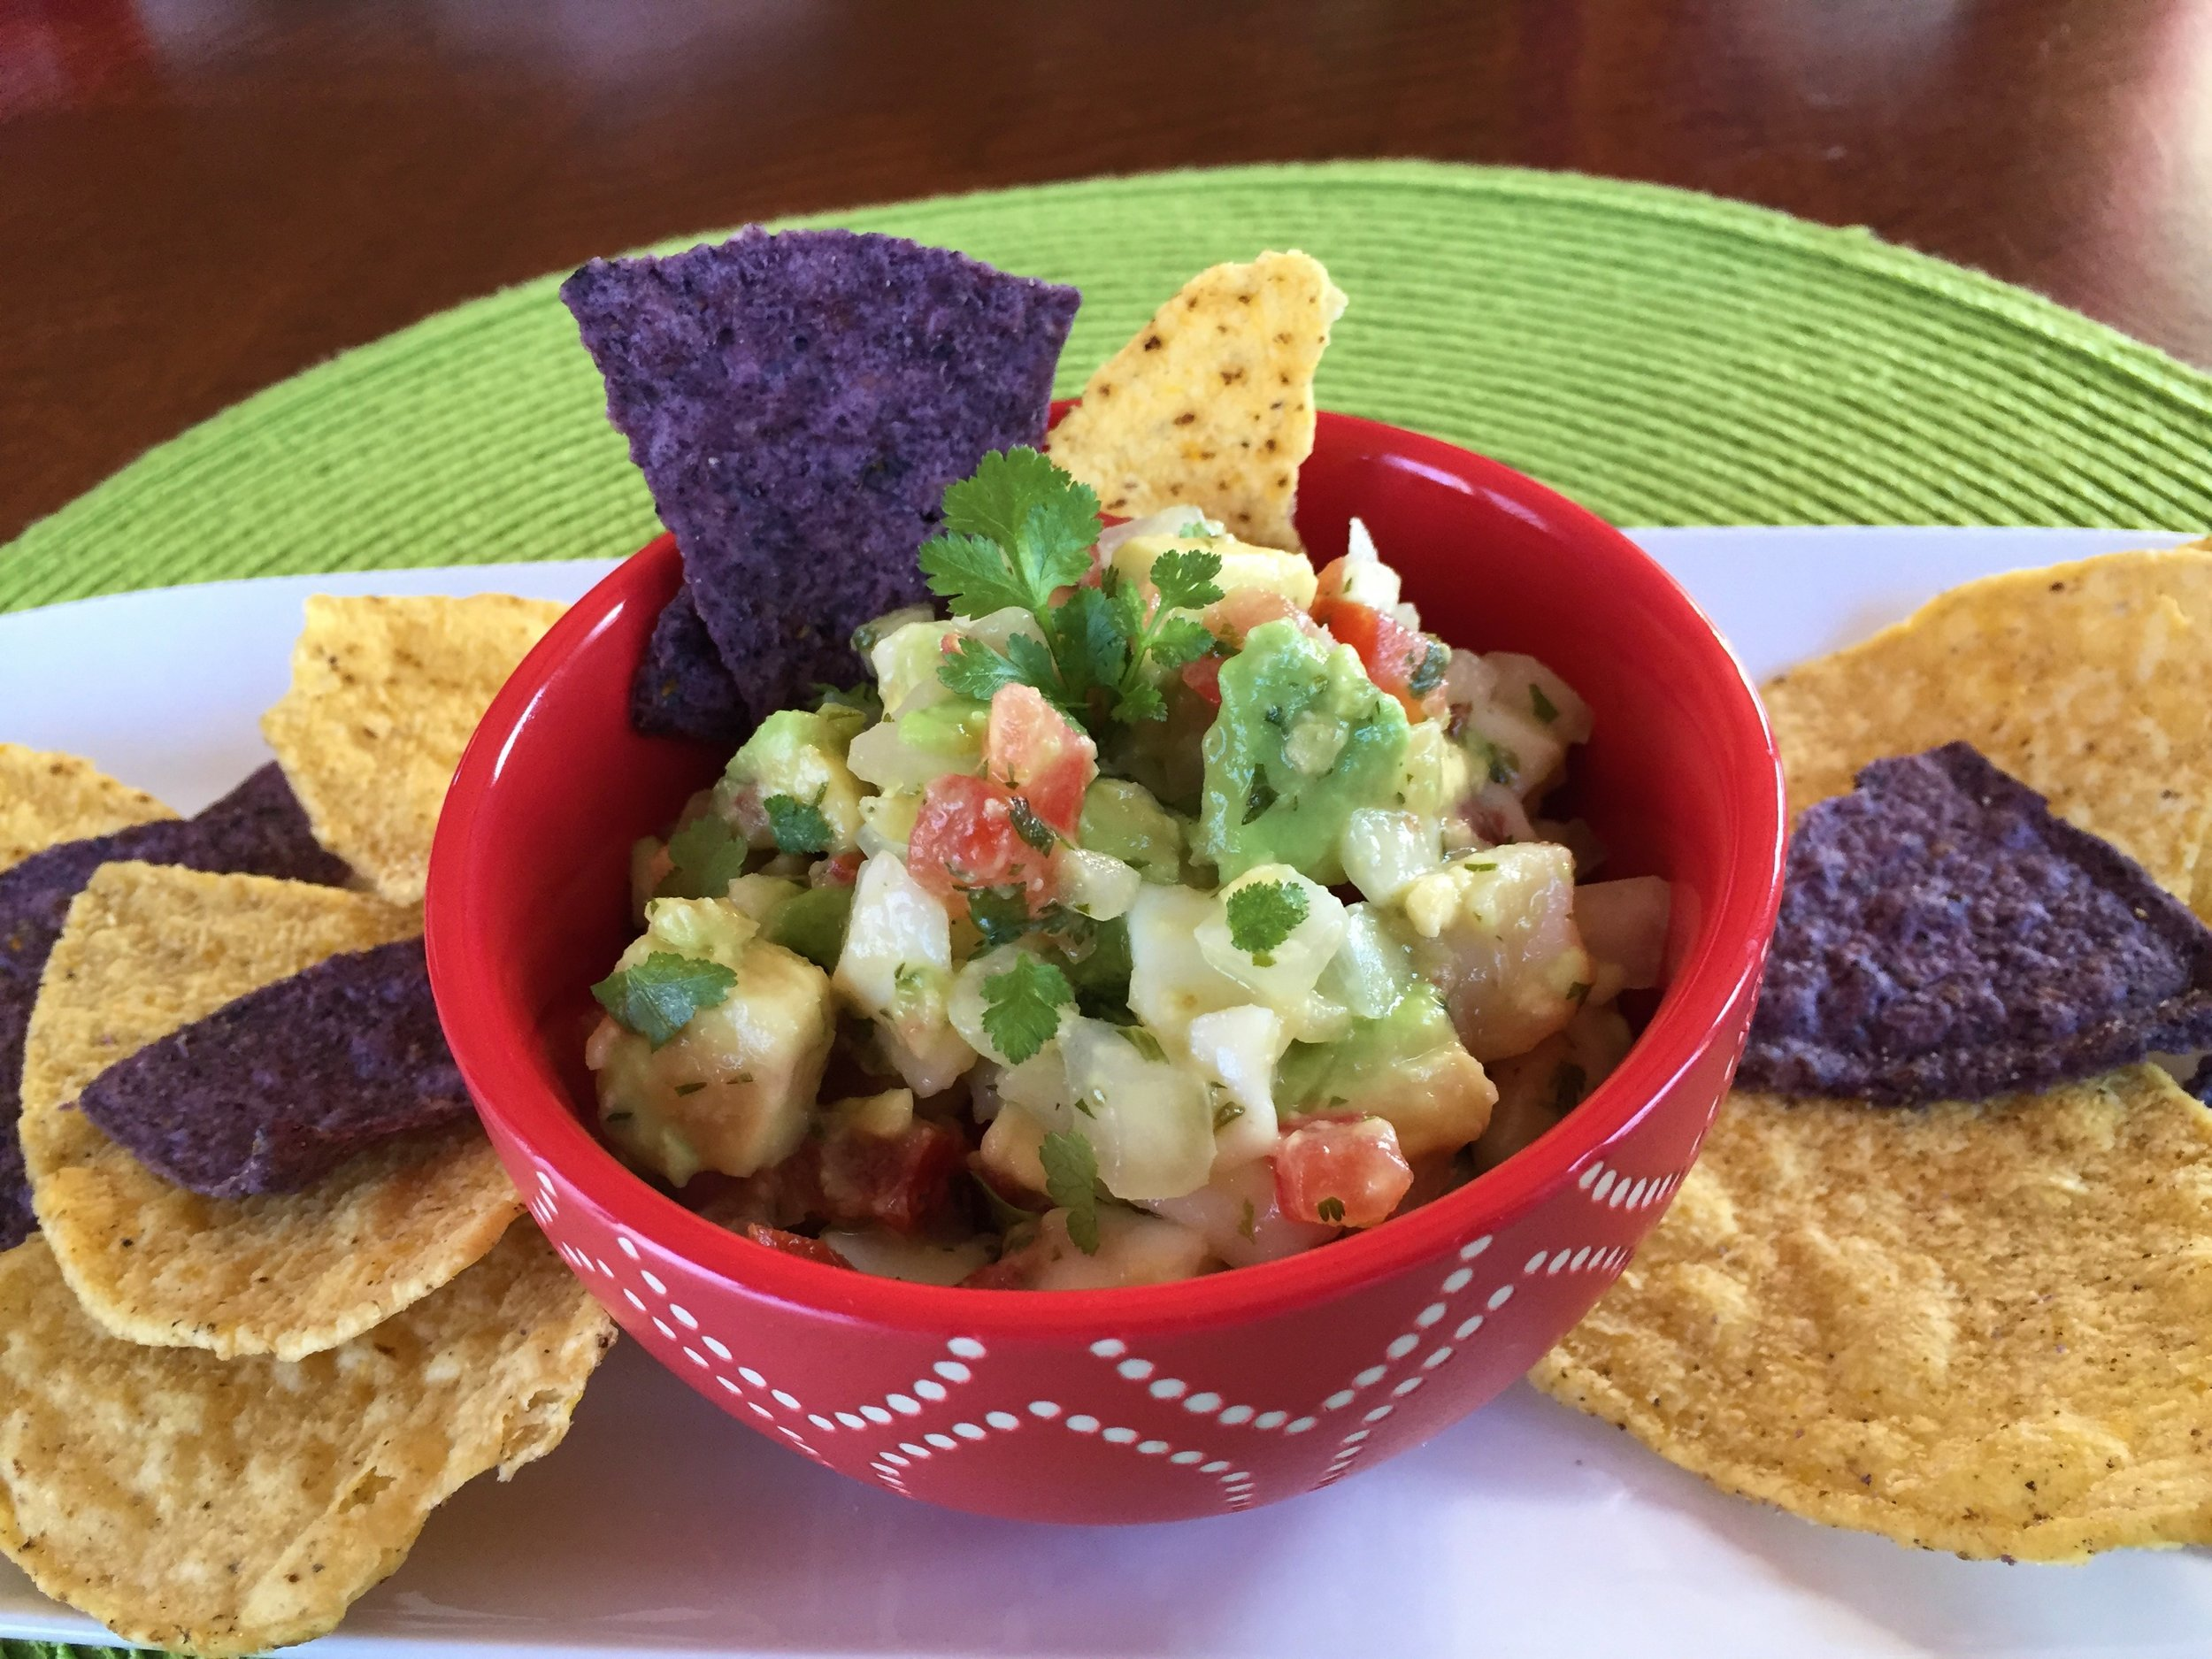 Ceviche, made in the Adventure Kitchen.